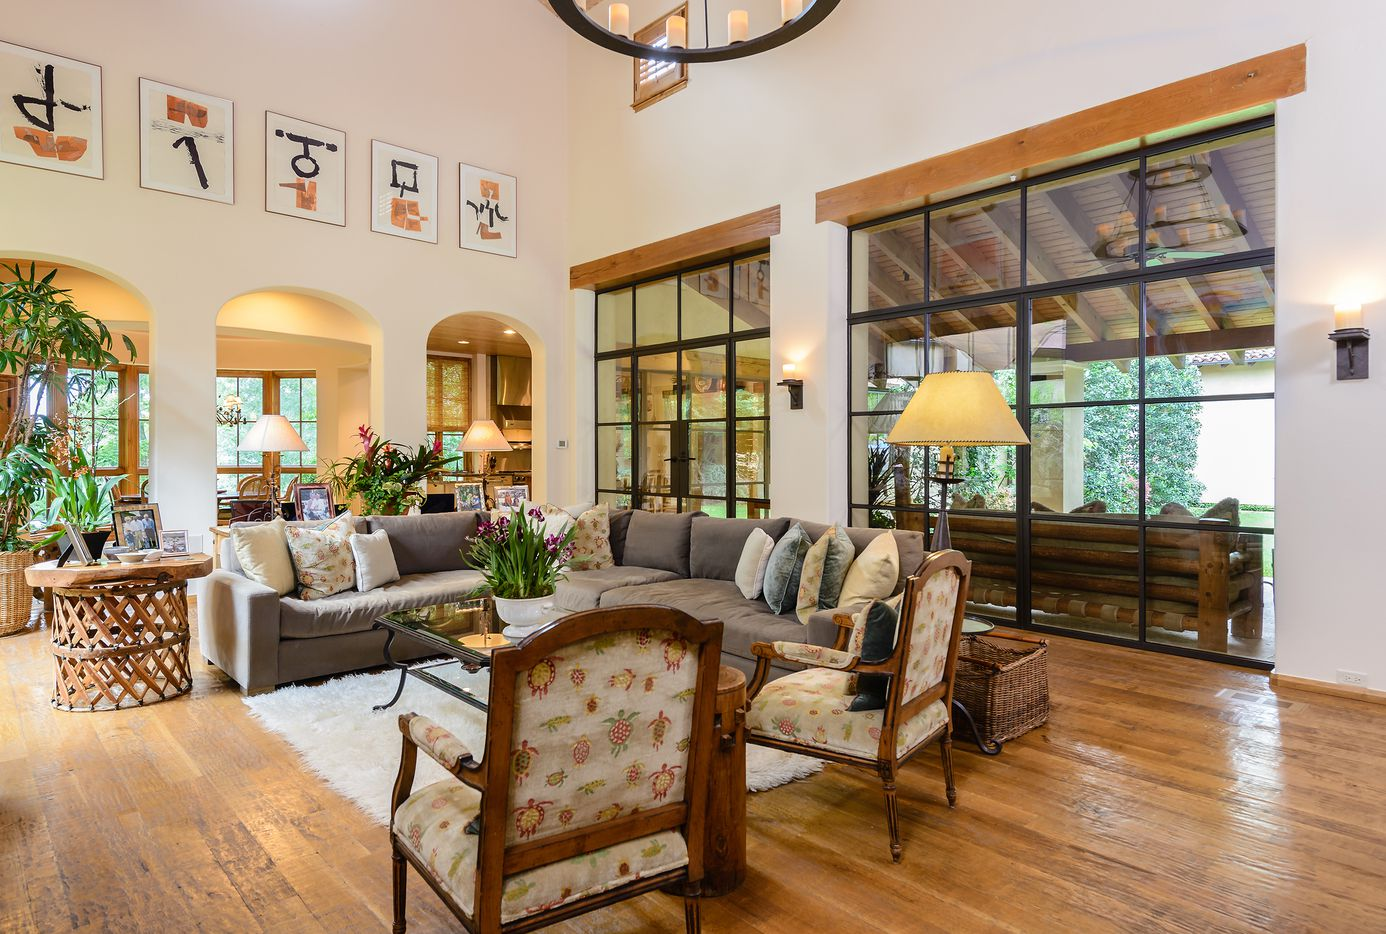 Take a look at the home 4131 Cochran Chapel Road in Dallas, TX.